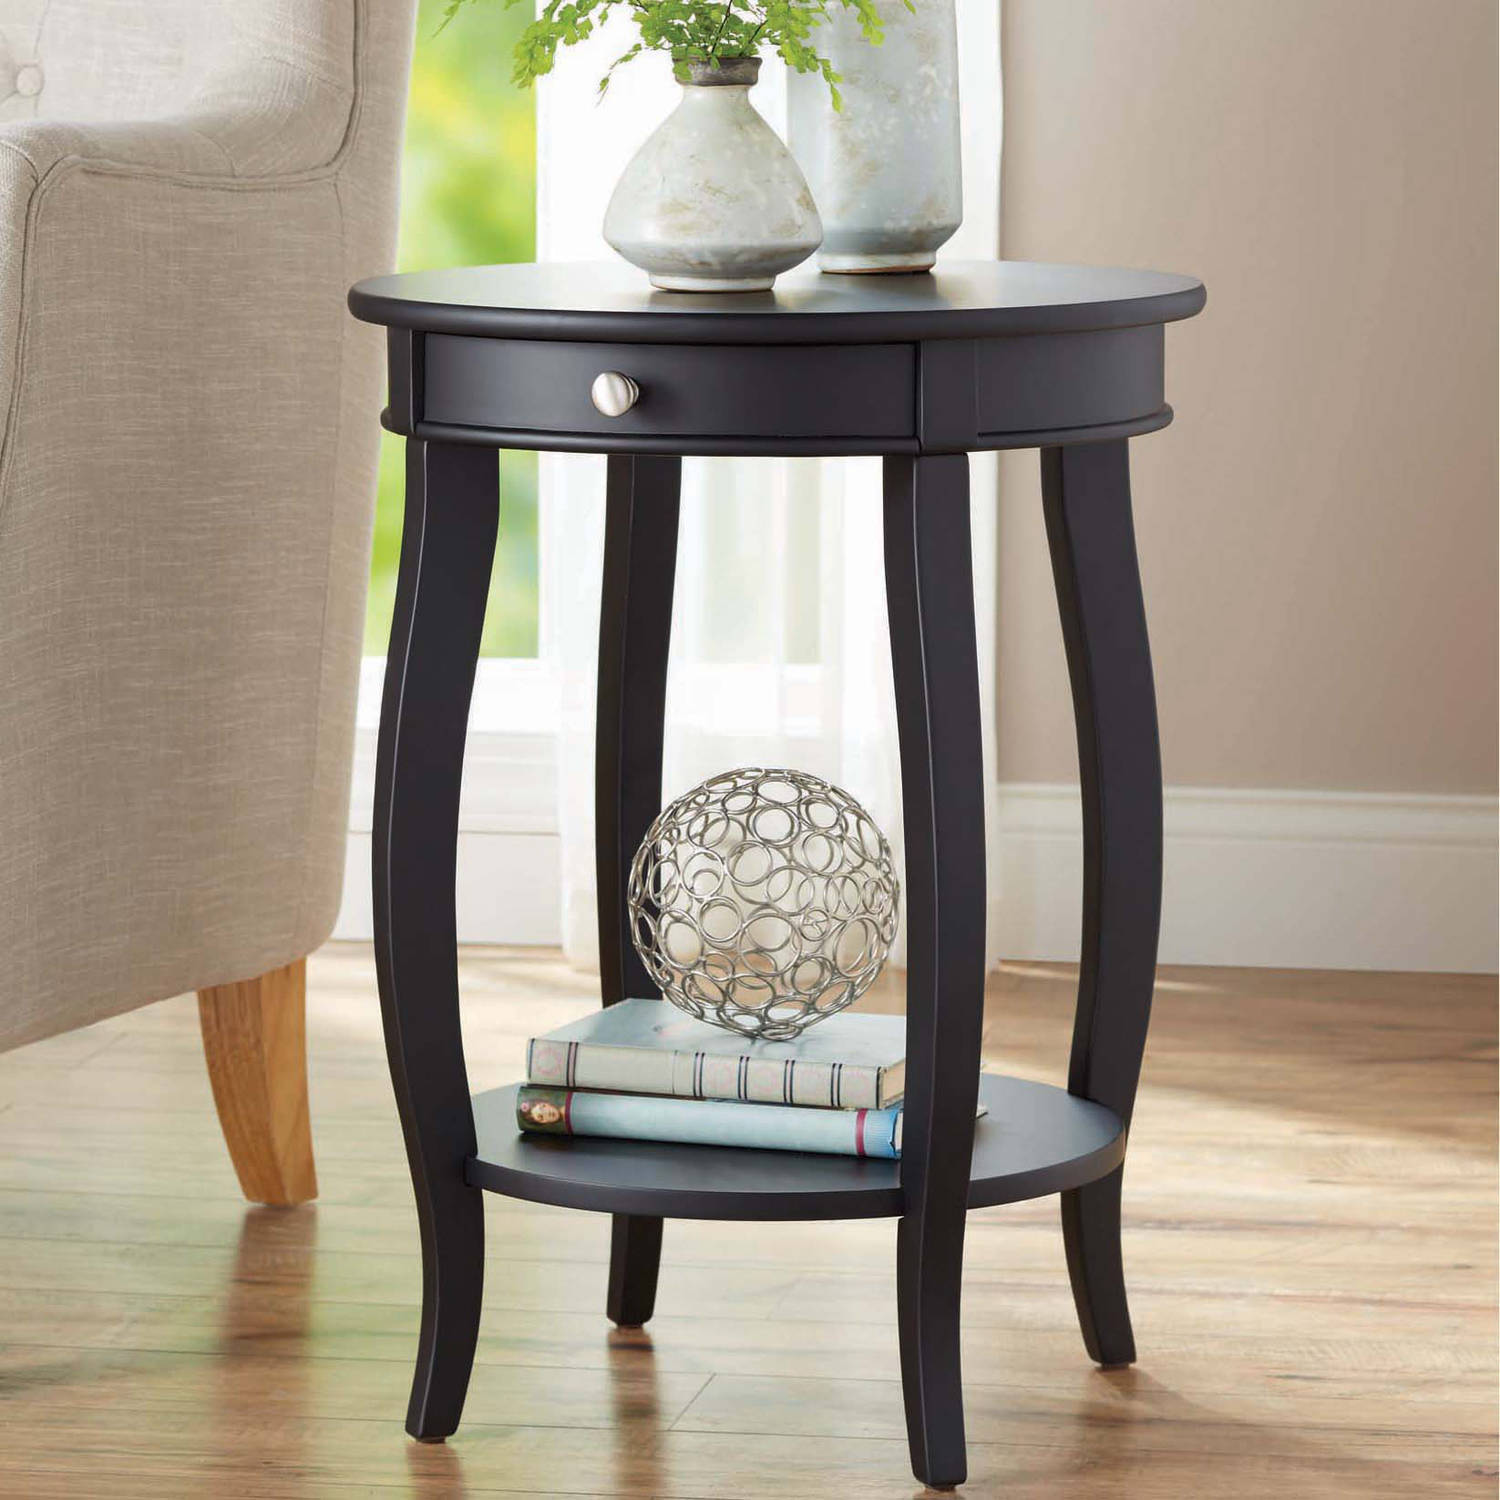 small end tables for living room canada images of rooms with fireplace better homes gardens round accent table drawer multiple colors walmart com